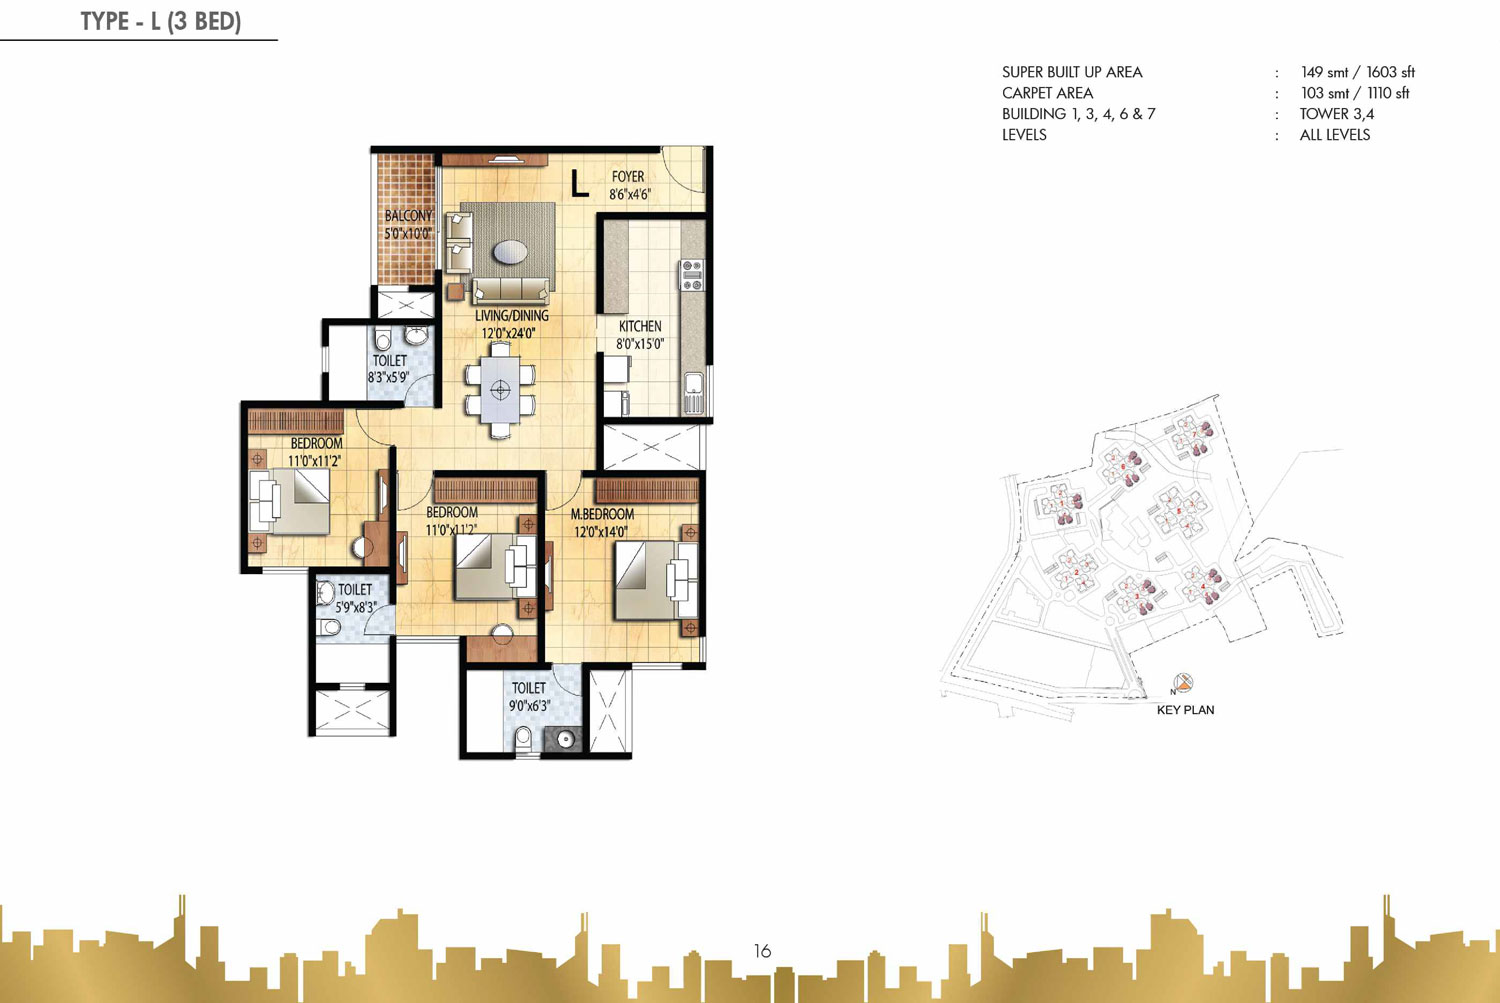 Type L - 3 Bed - 1603 Sq Ft